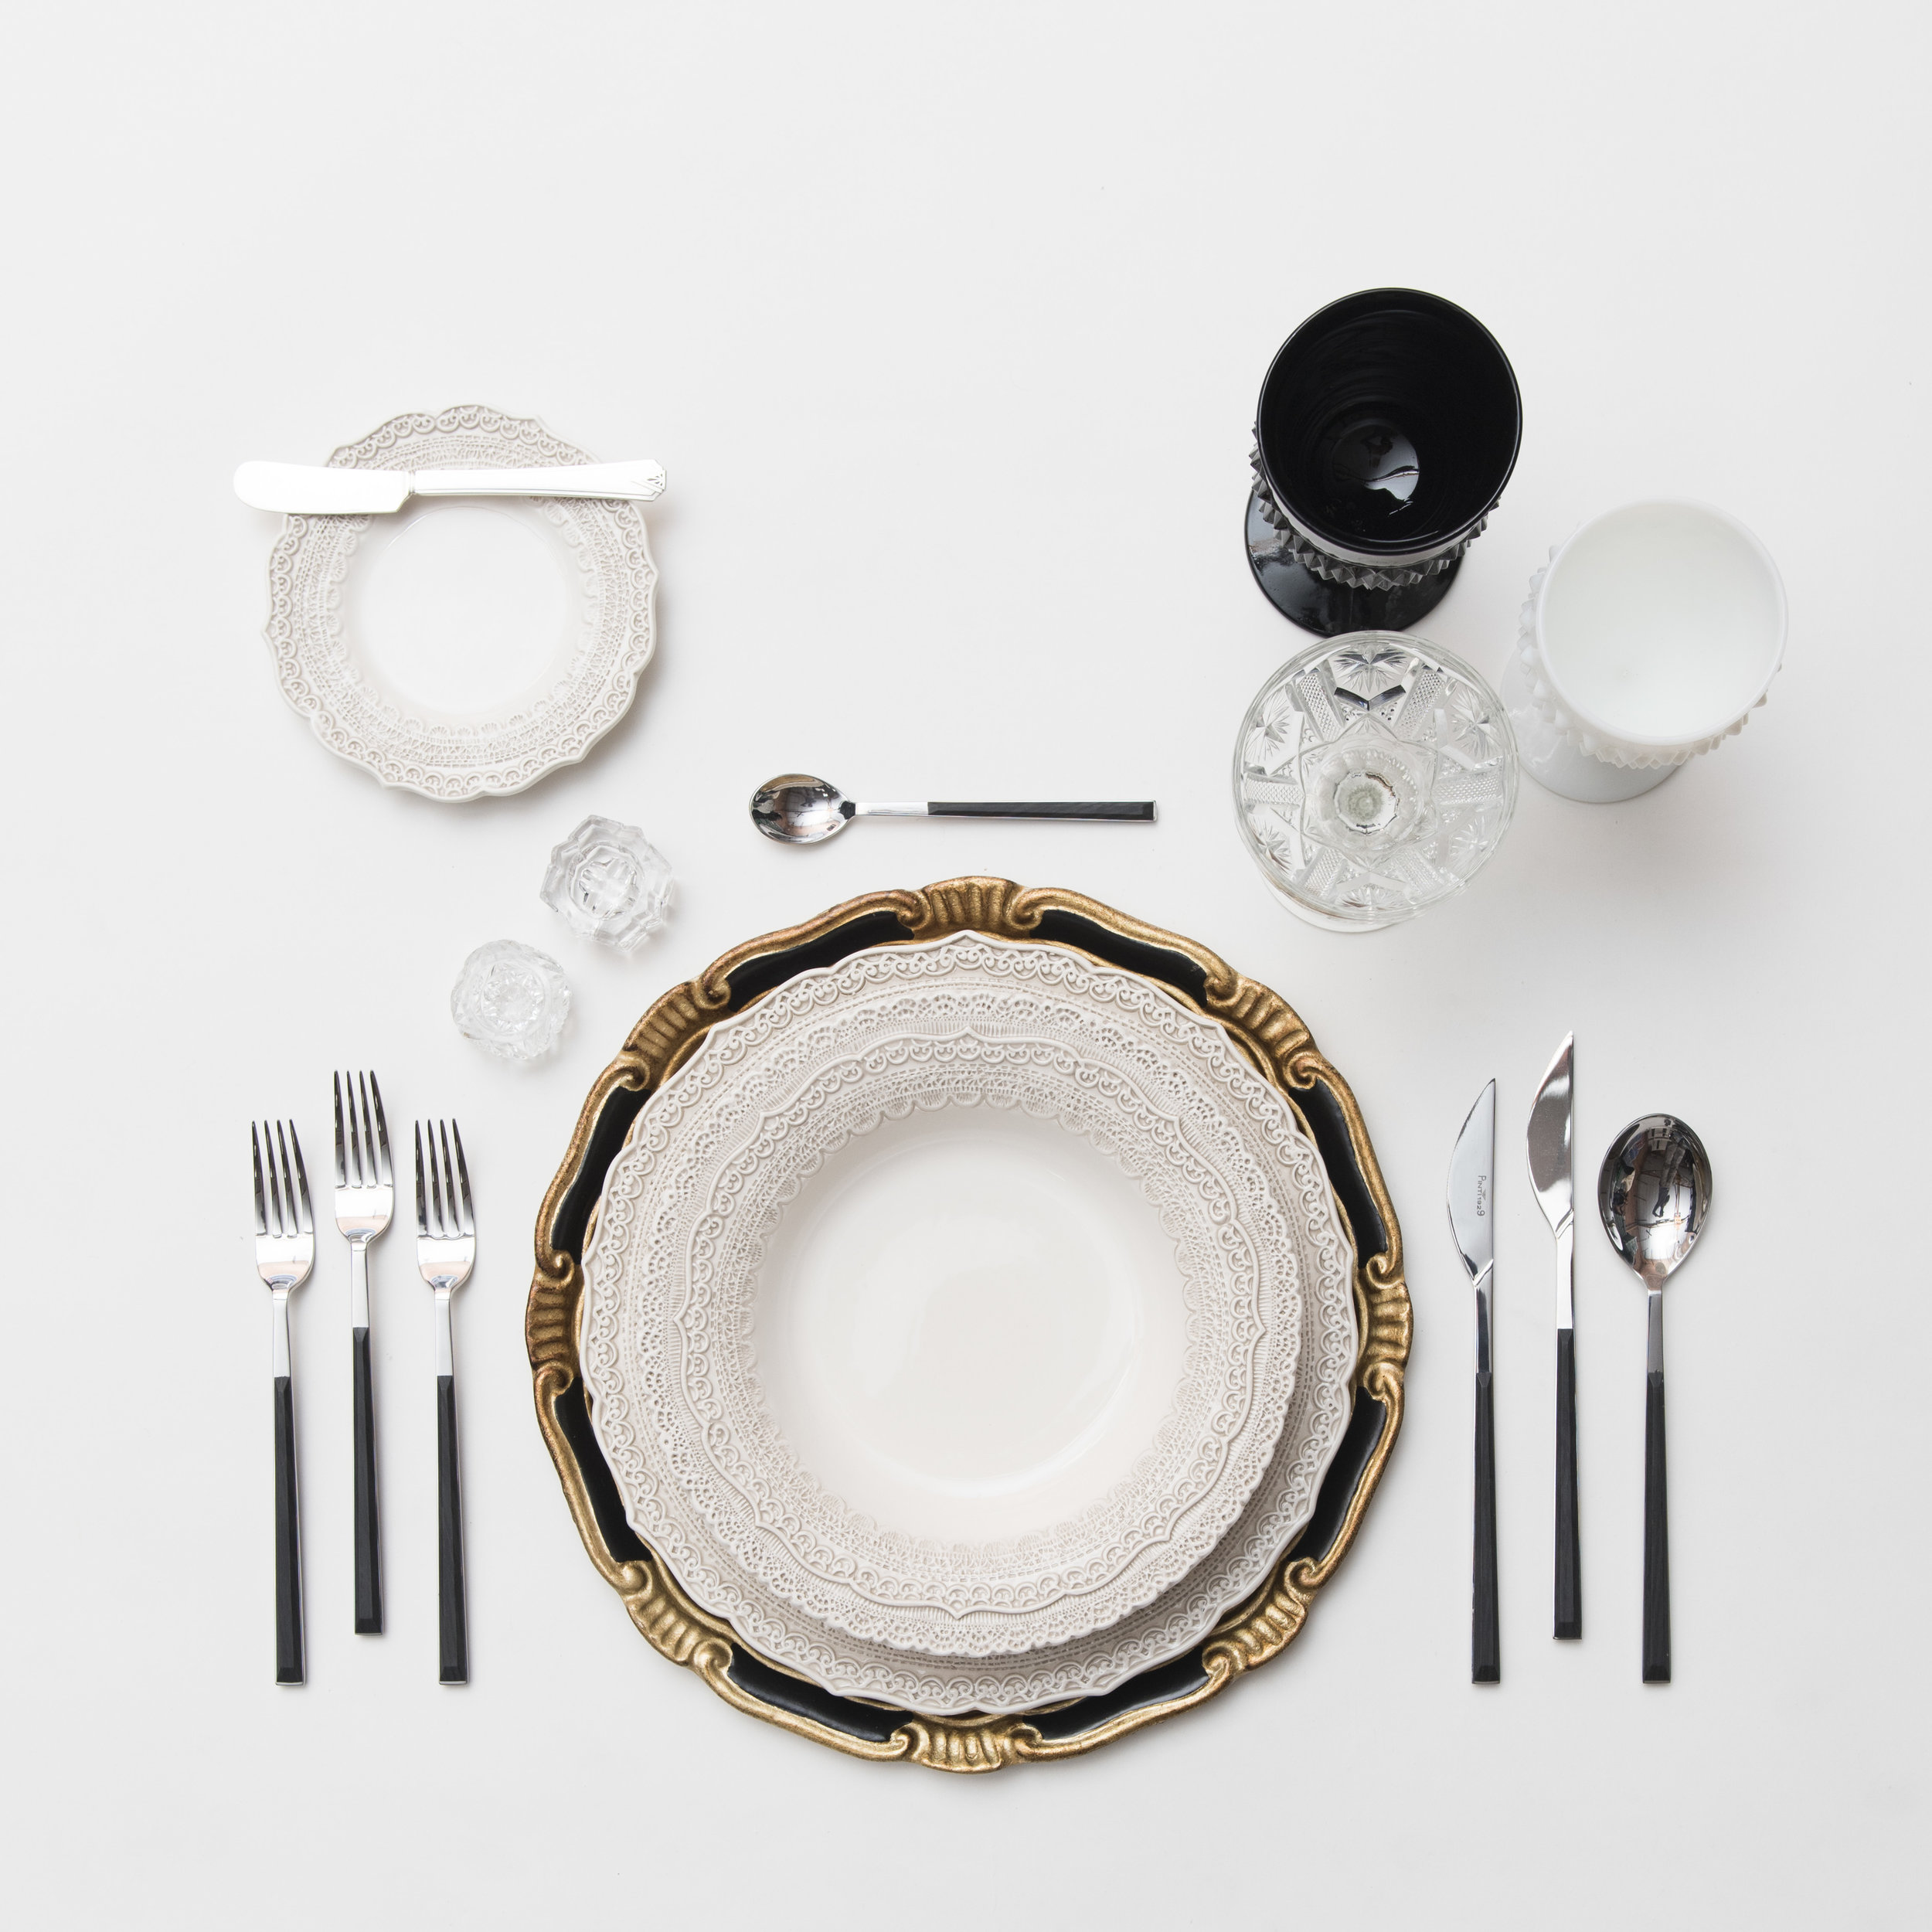 RENT: Florentine Chargers in Black/Gold + Lace Dinnerware in White + Danish Flatware in Ebony + Black/Milk Glass Vintage Goblets + Vintage Champagne Coupes + Antique Crystal Salt Cellars  SHOP: Florentine Chargers in Black/Gold